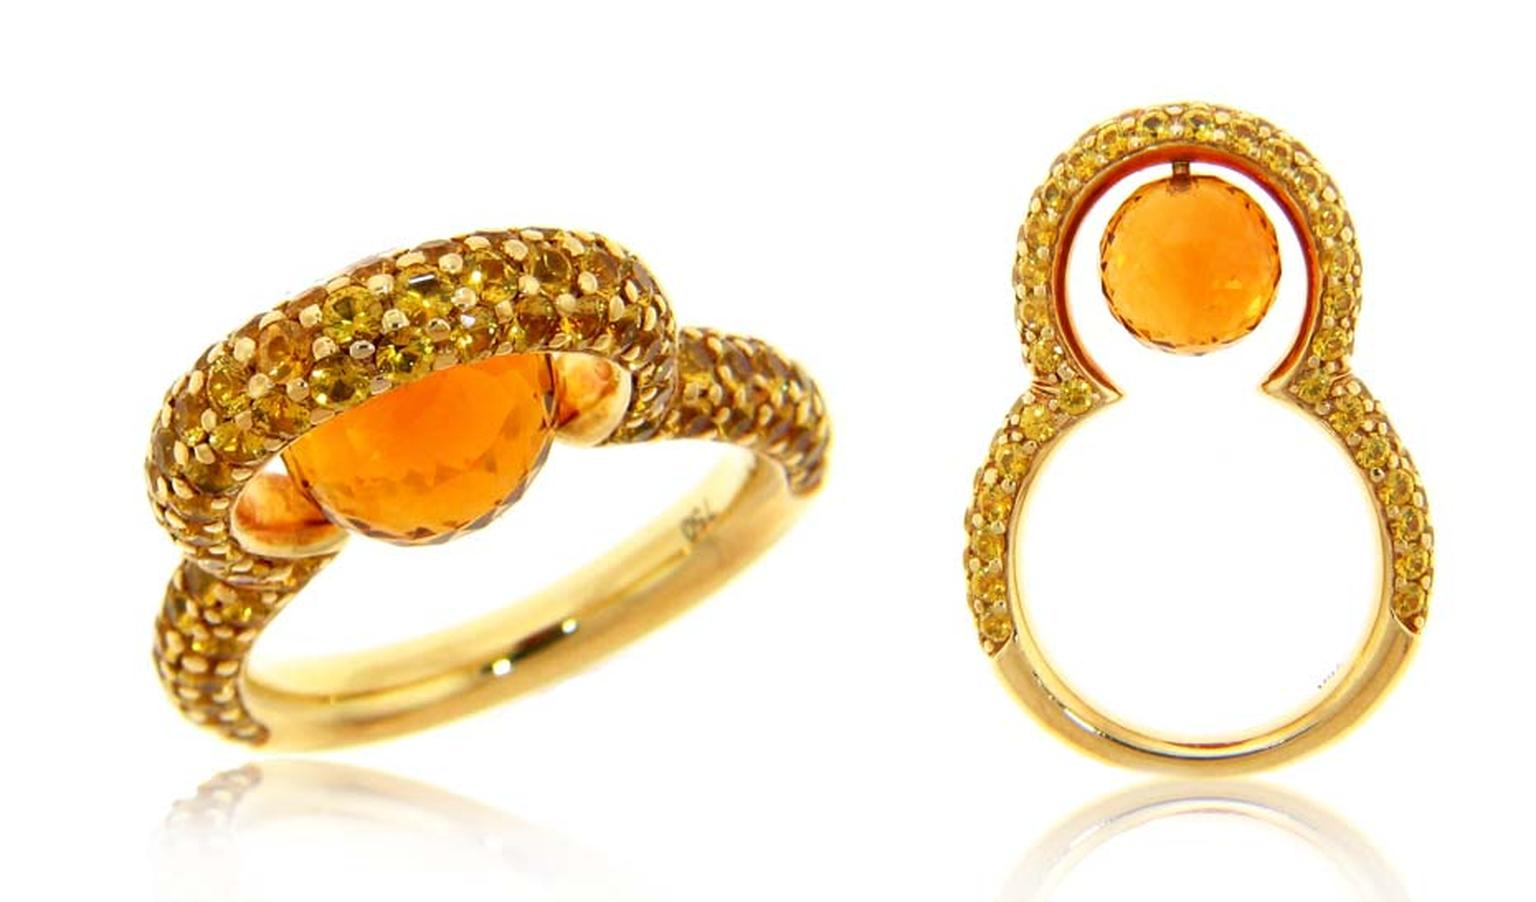 Michael John Jewelry yellow gold pearl ring with a 2.74ct faceted sapphire and pavé citrine (US$5,300).